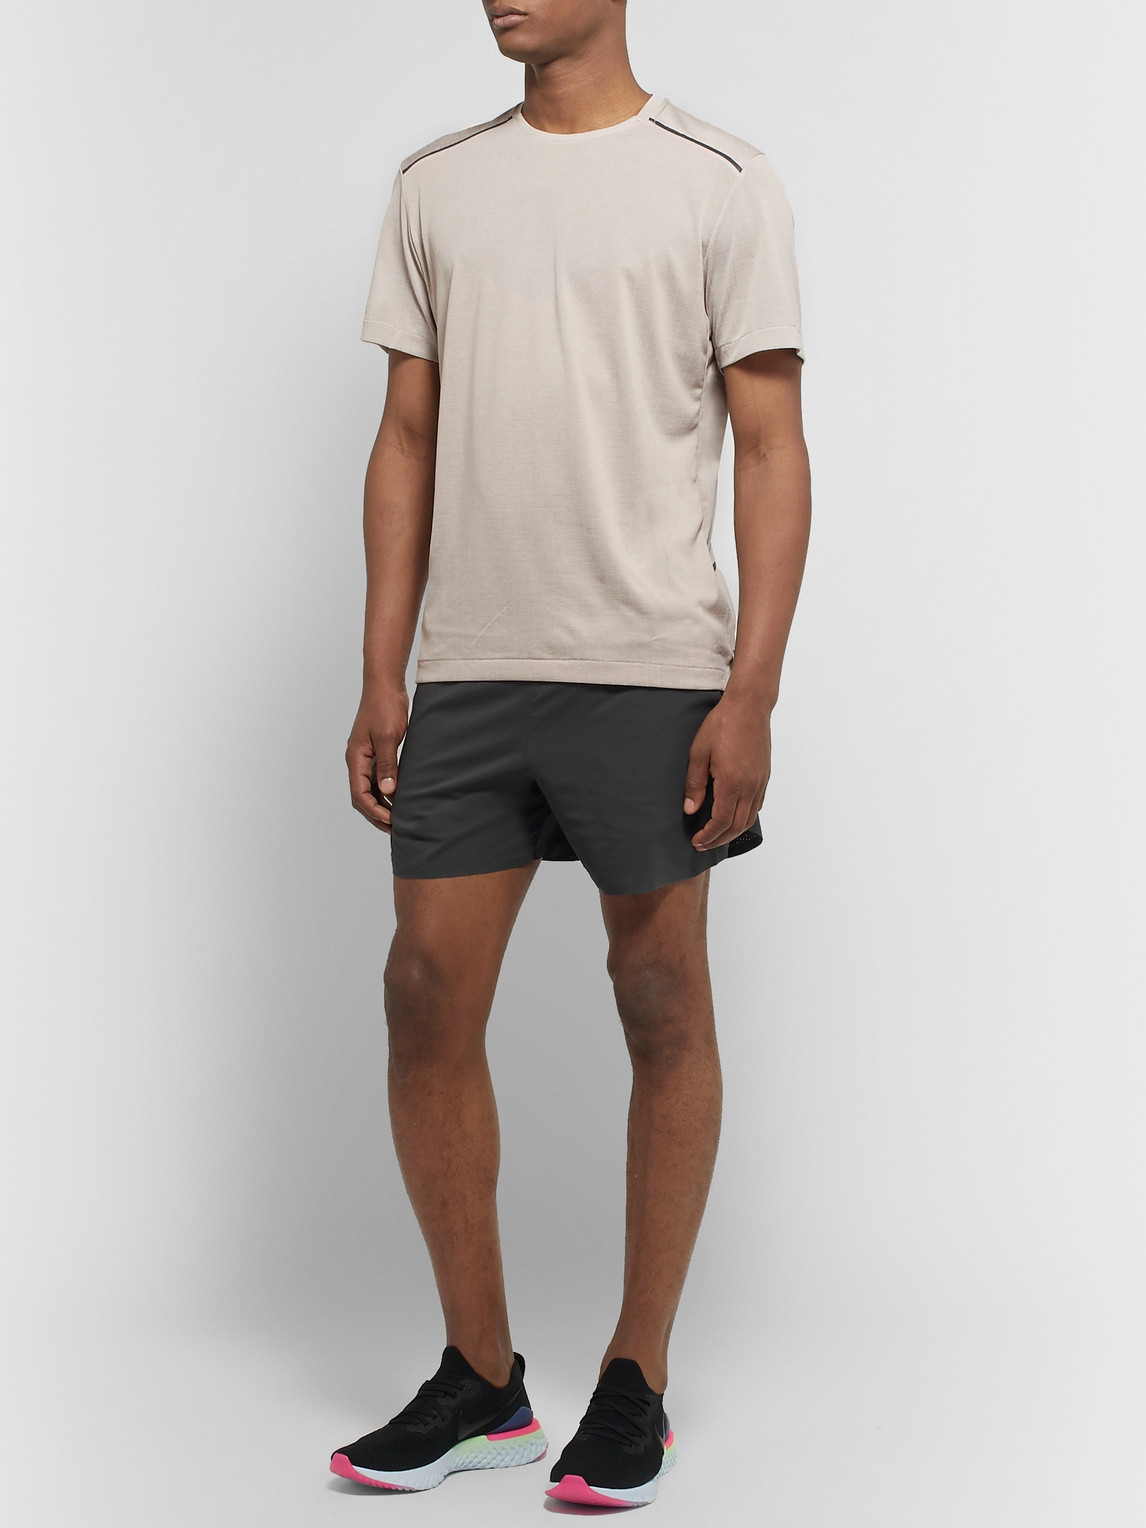 Nike Shorts TECH PACK PERFORATED STRETCH JACQUARD